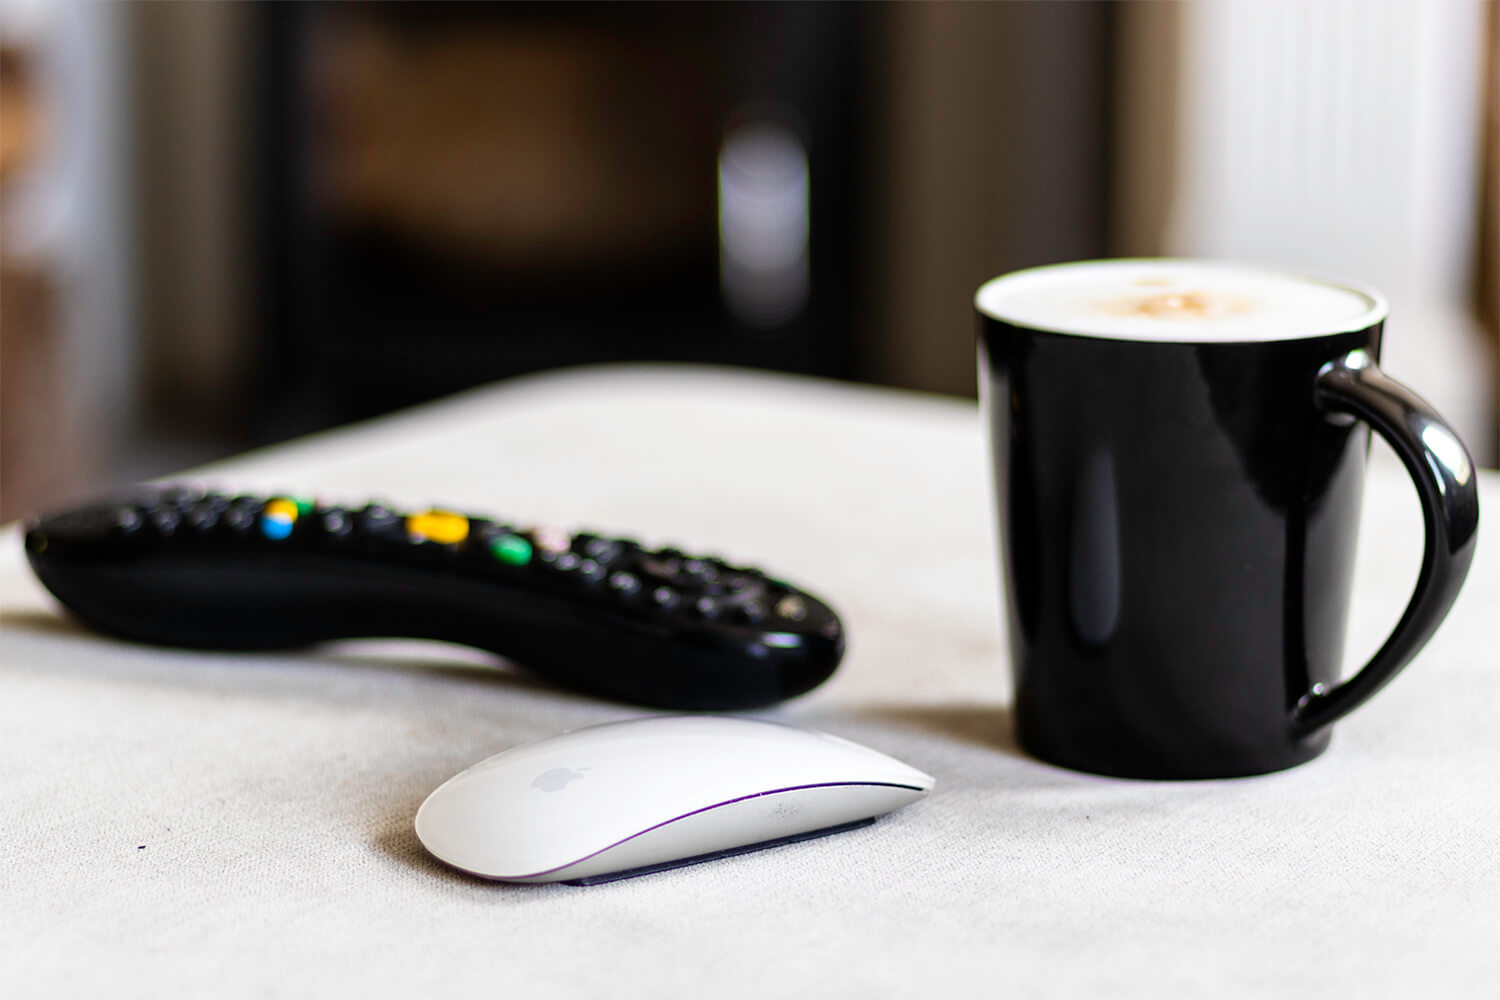 A magic mouse, cappucino and TV remote on a foot stool